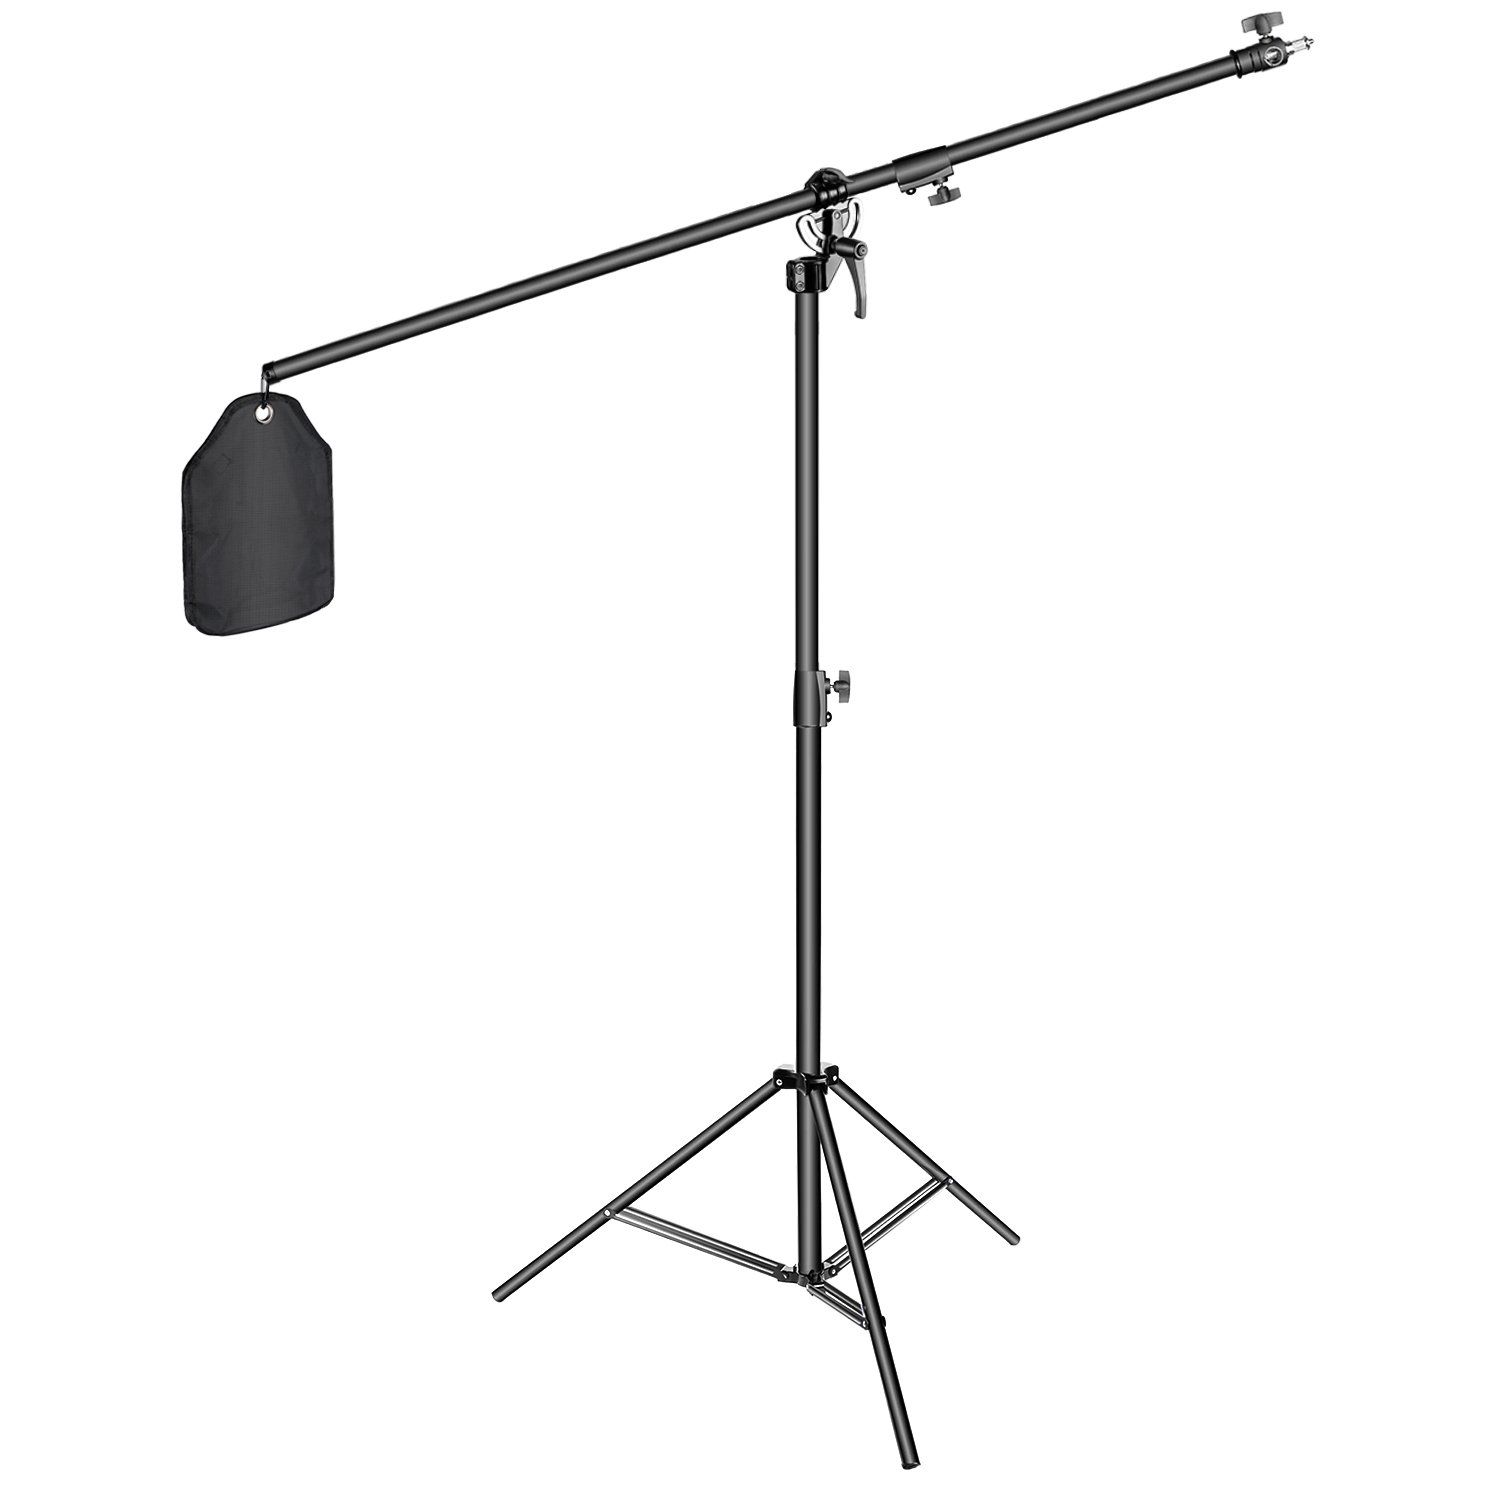 Neewer Photo Studio 2-in-1 Light Stand 48.4-151.5 inches...